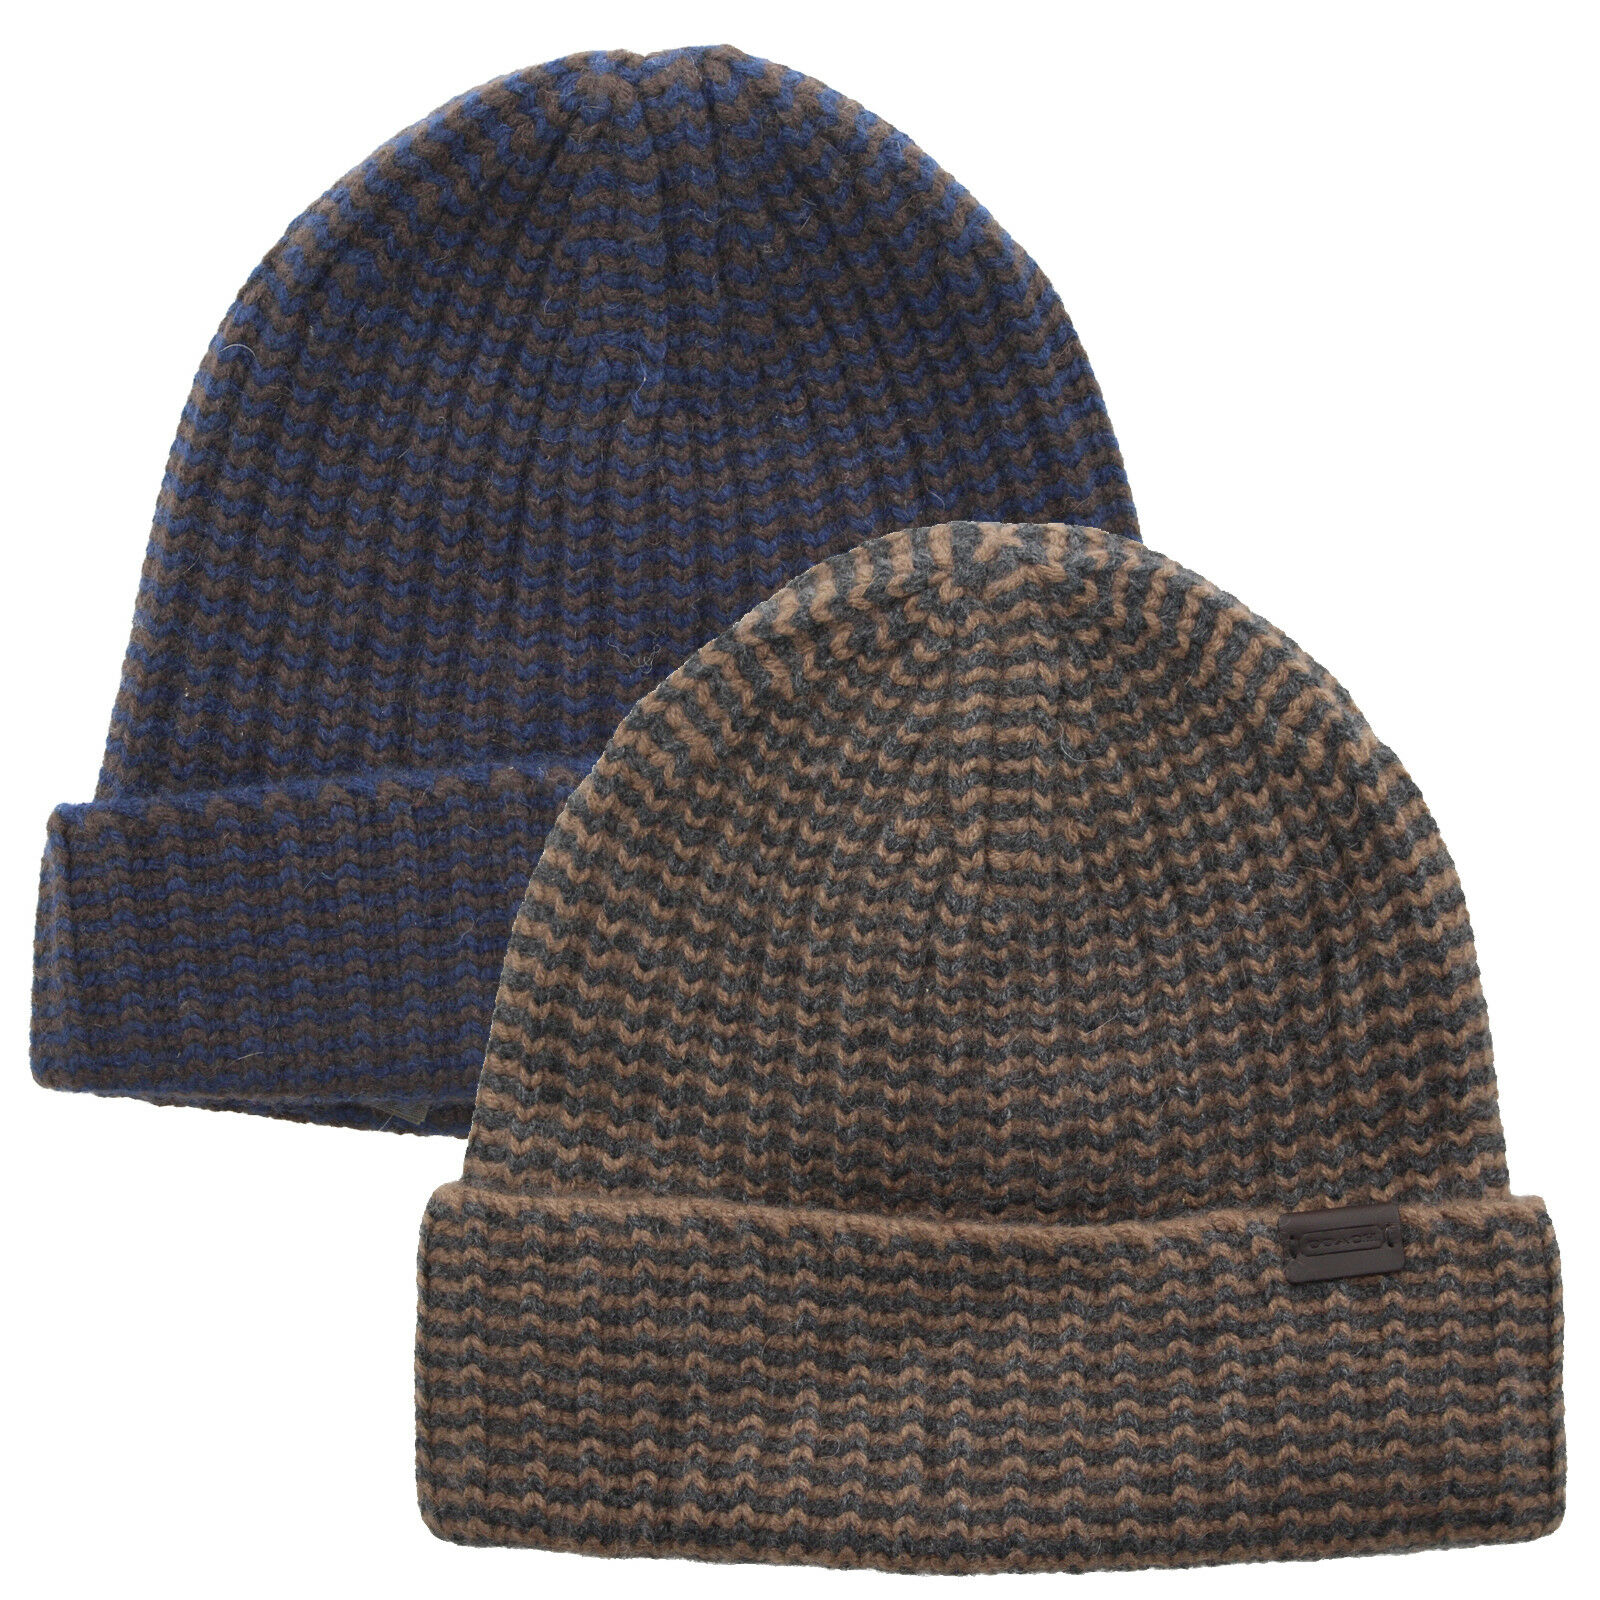 best loved cd10f 45488 netherlands coach 84091 cashmere striped knit hat beanie navy blue tan gray  beanie hat cap 8ffa32